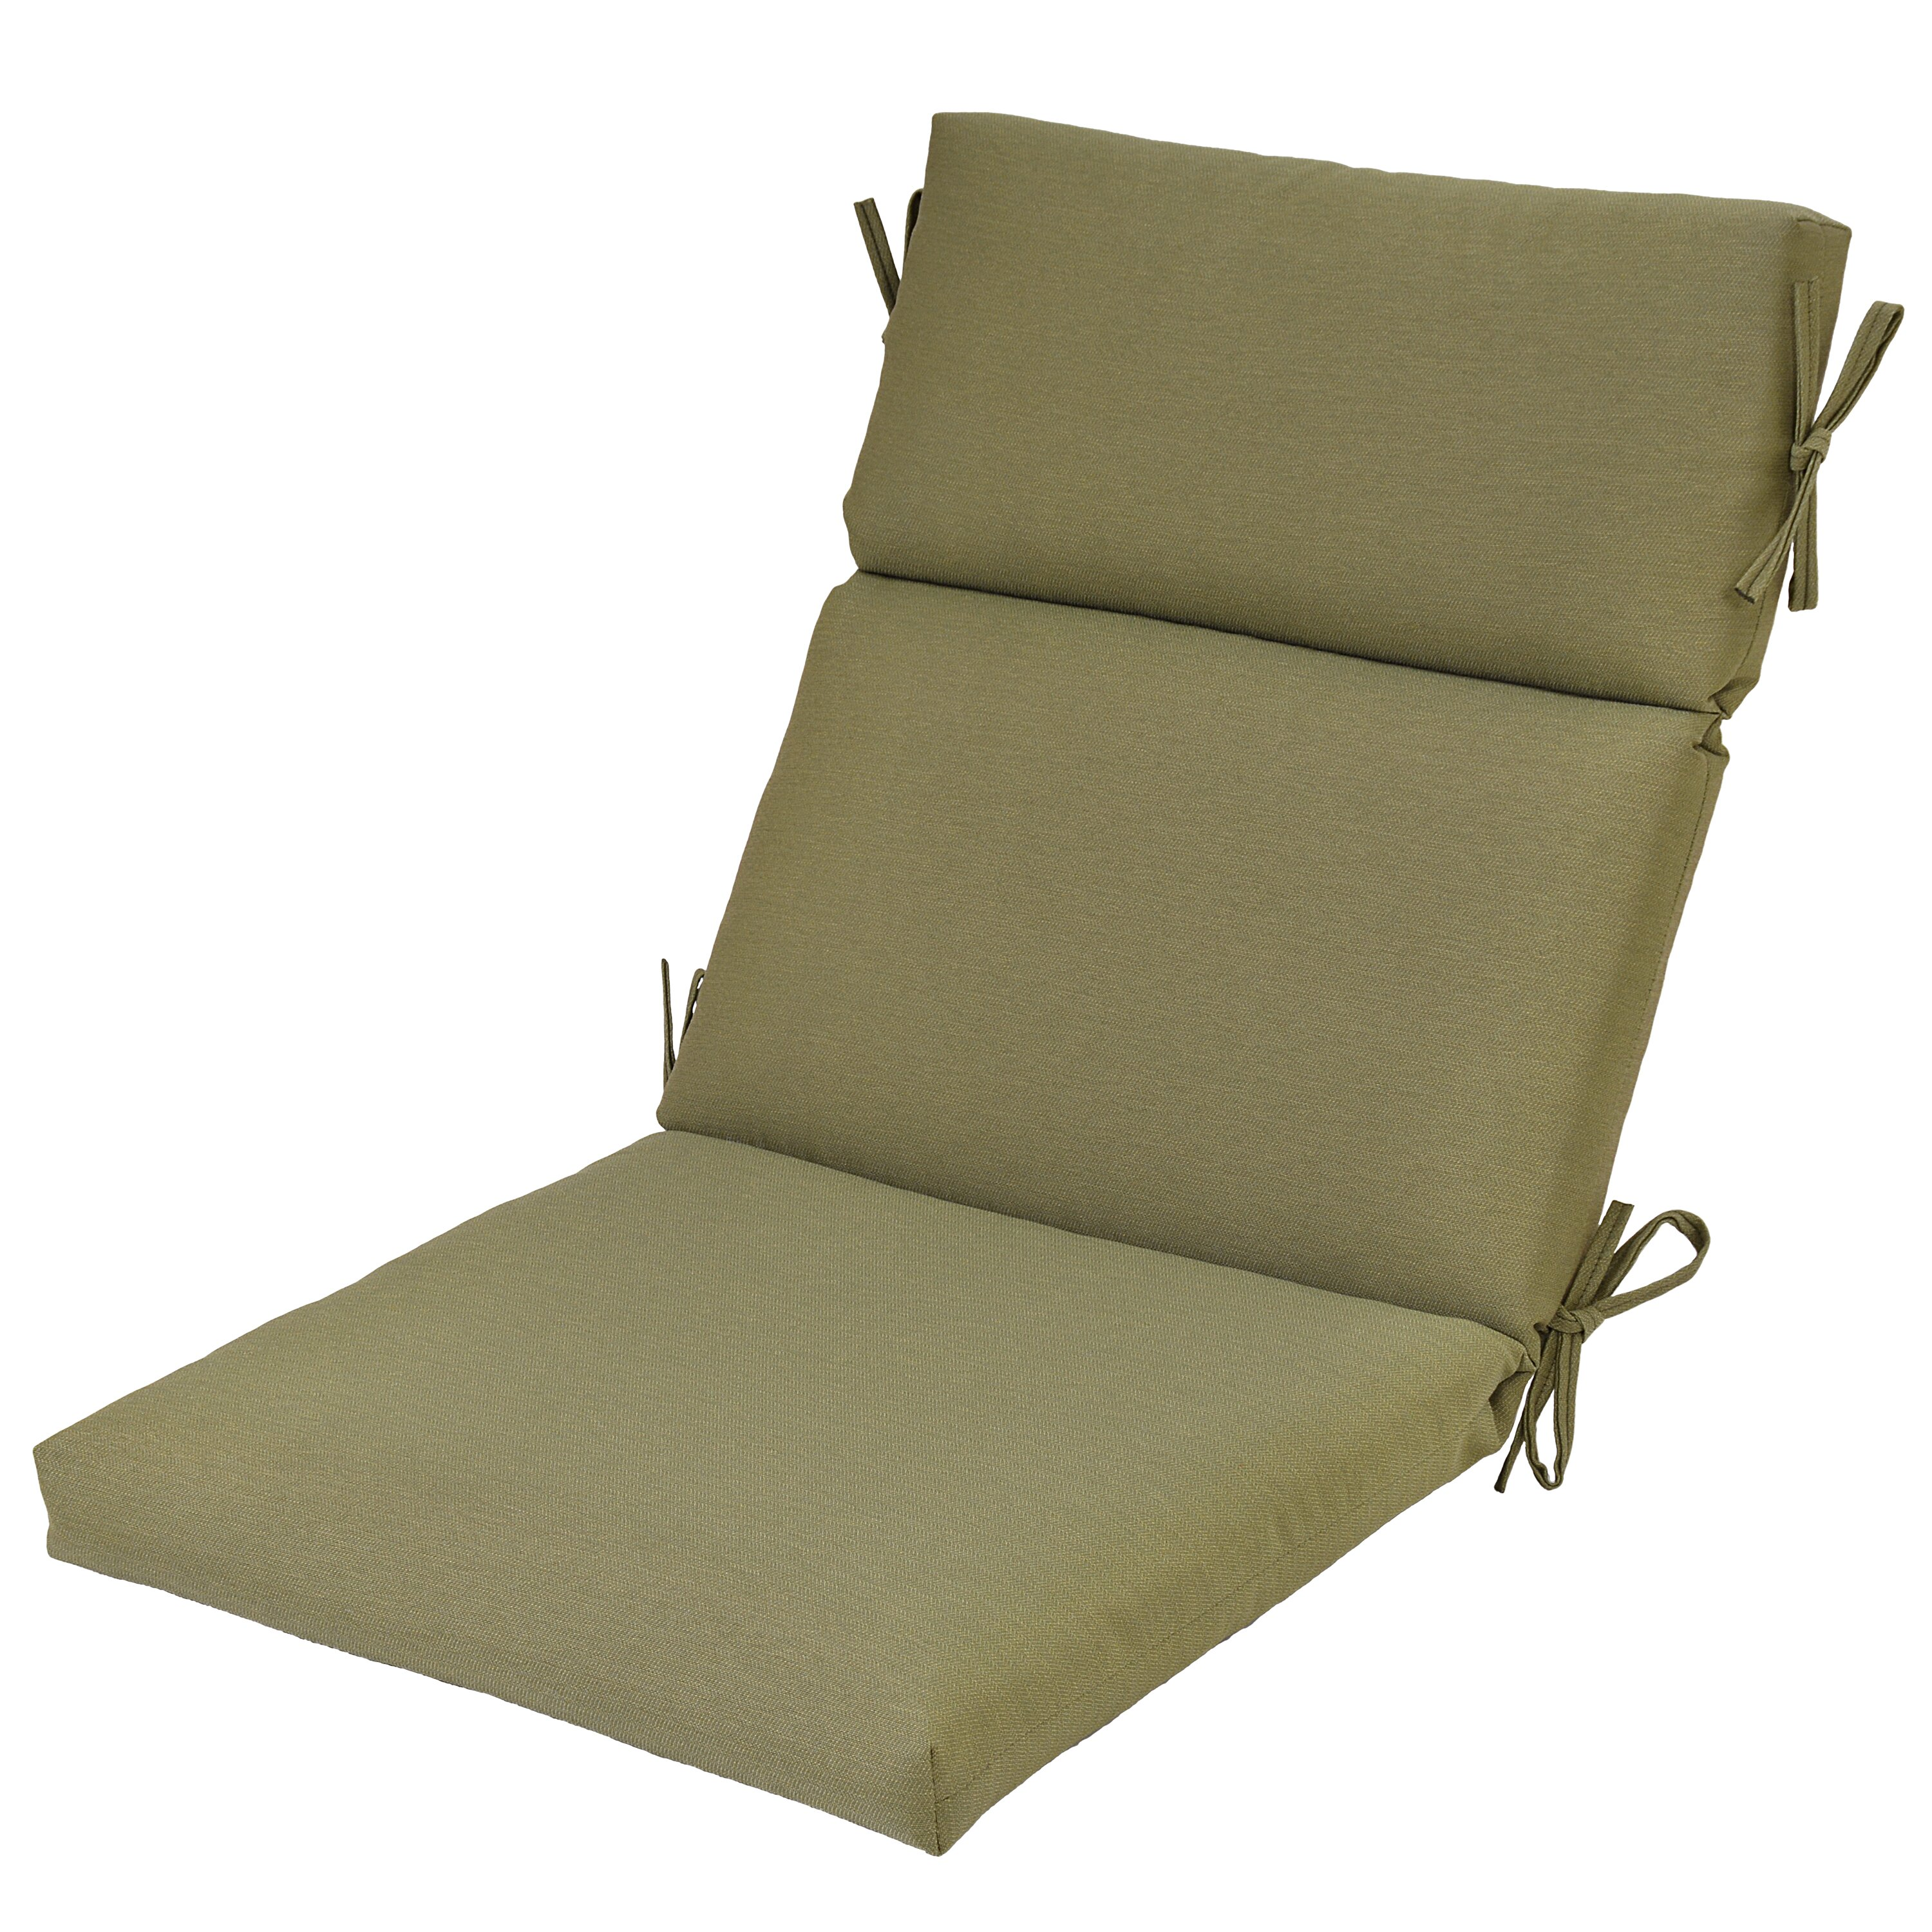 Shop allen roth sunbrella canvas teak brown deep seat for Garden furniture cushions